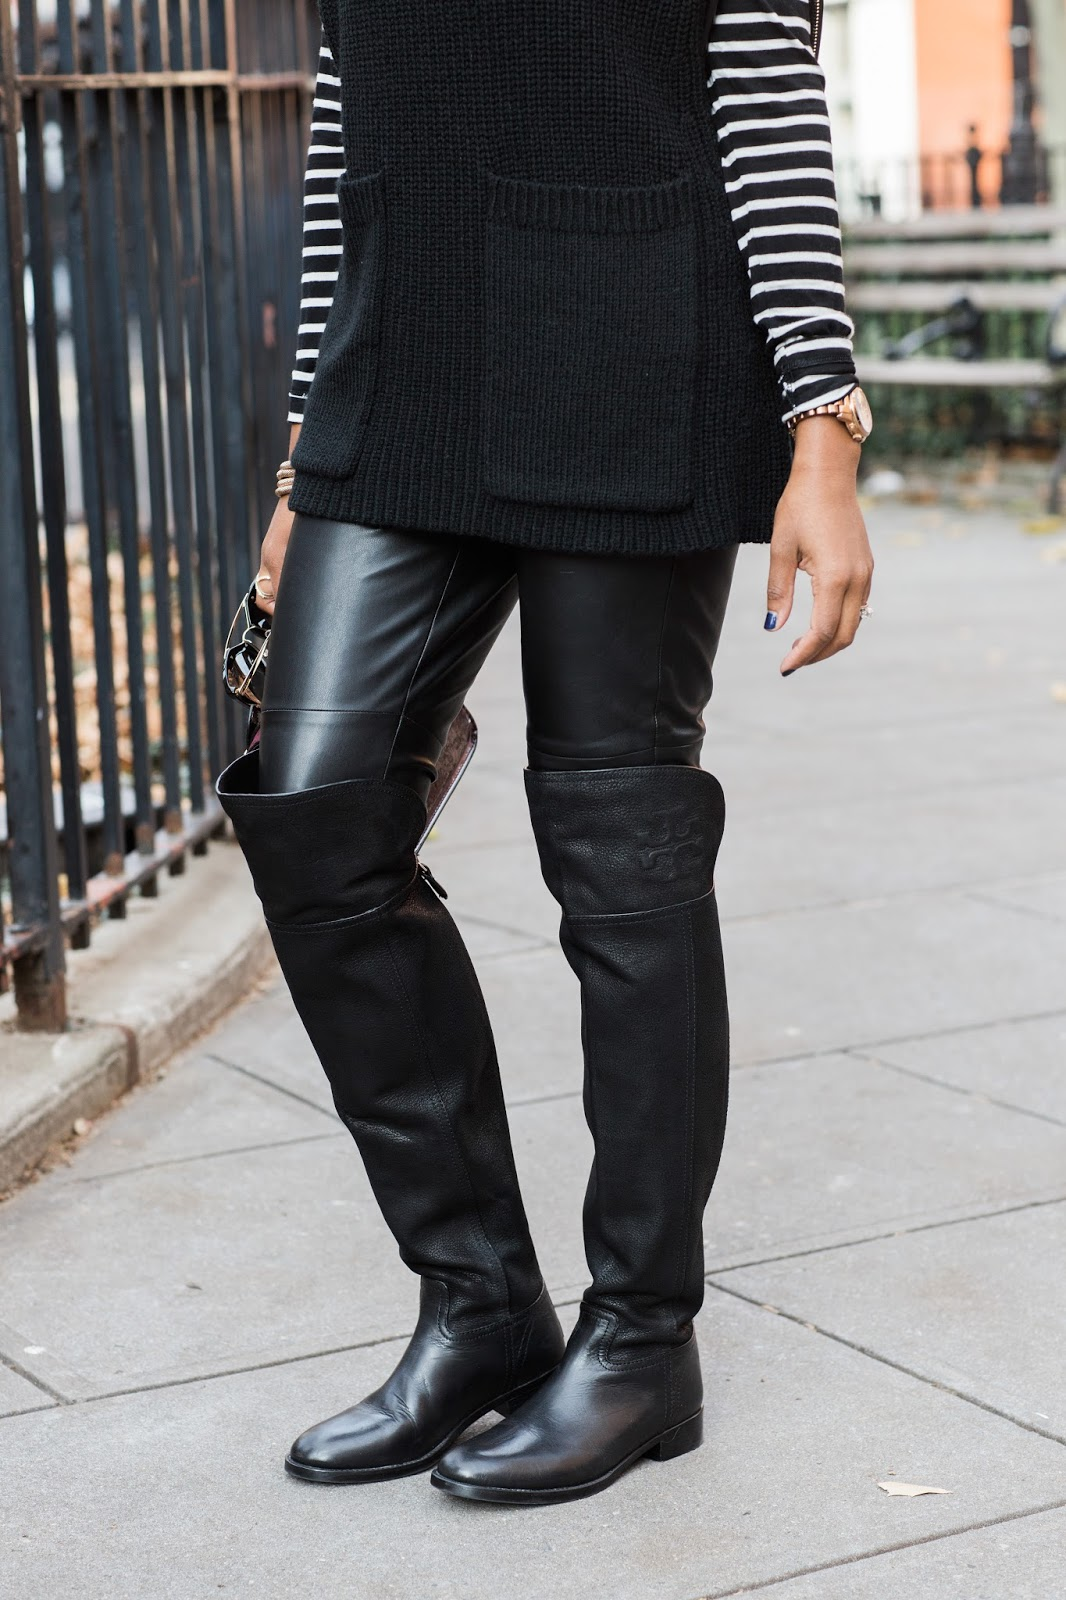 fashion blogger, dallas fashion blogger, new york street style, poncho, cape, how to wear layers, tory burch simone boot, otk boot